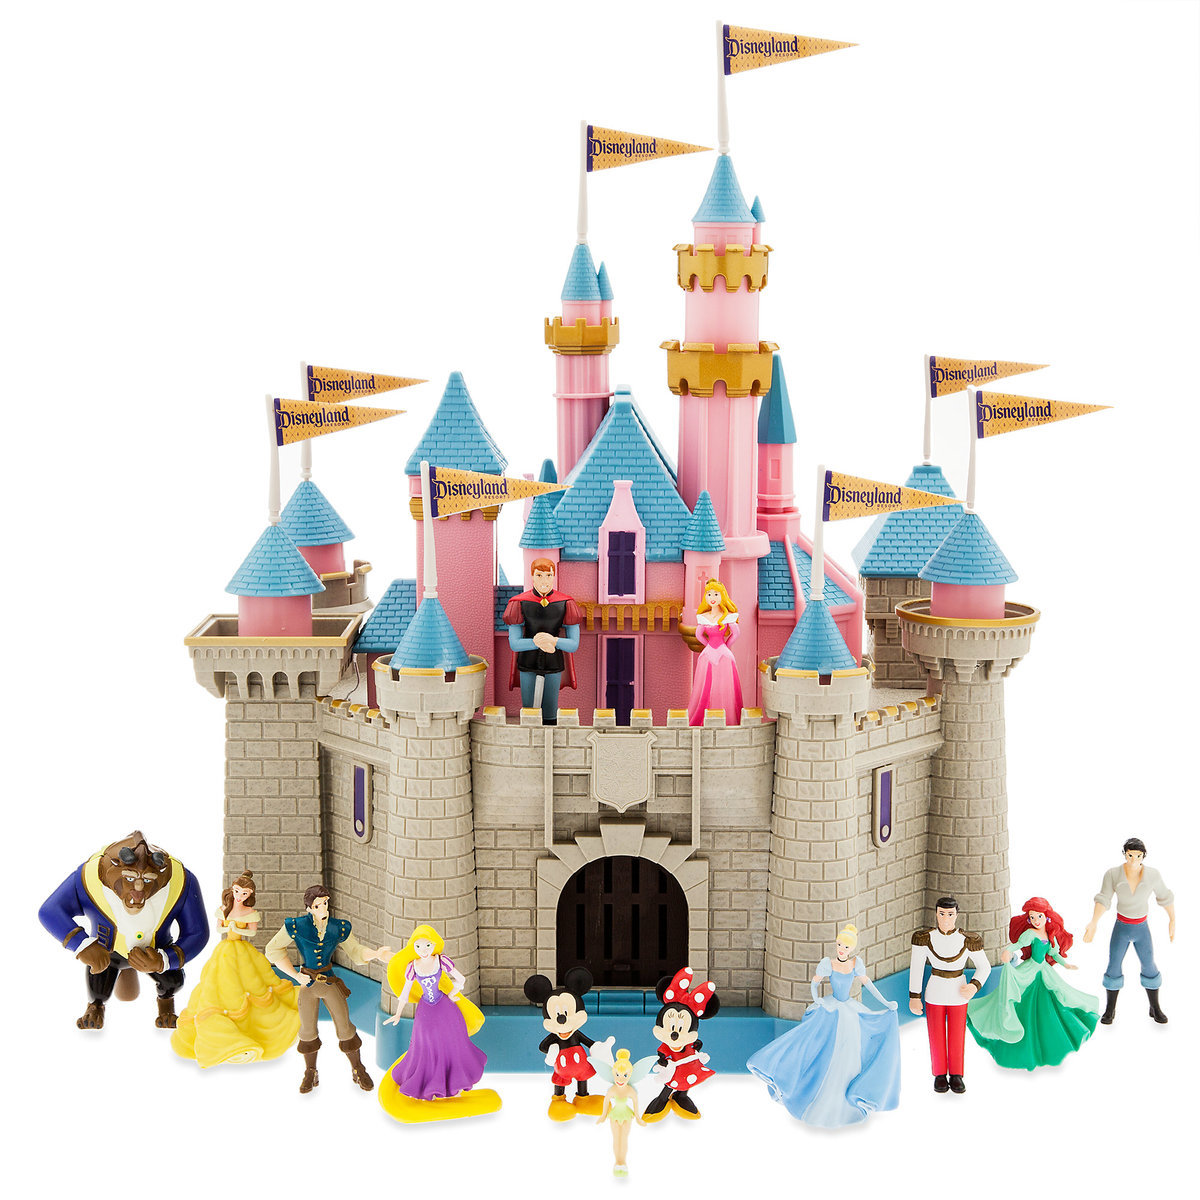 Sleeping Beauty Castle Play Set for toddlers | Top 25 Disney Gift Ideas for Toddlers featured by top US Disney blogger, Marcie and the Mouse